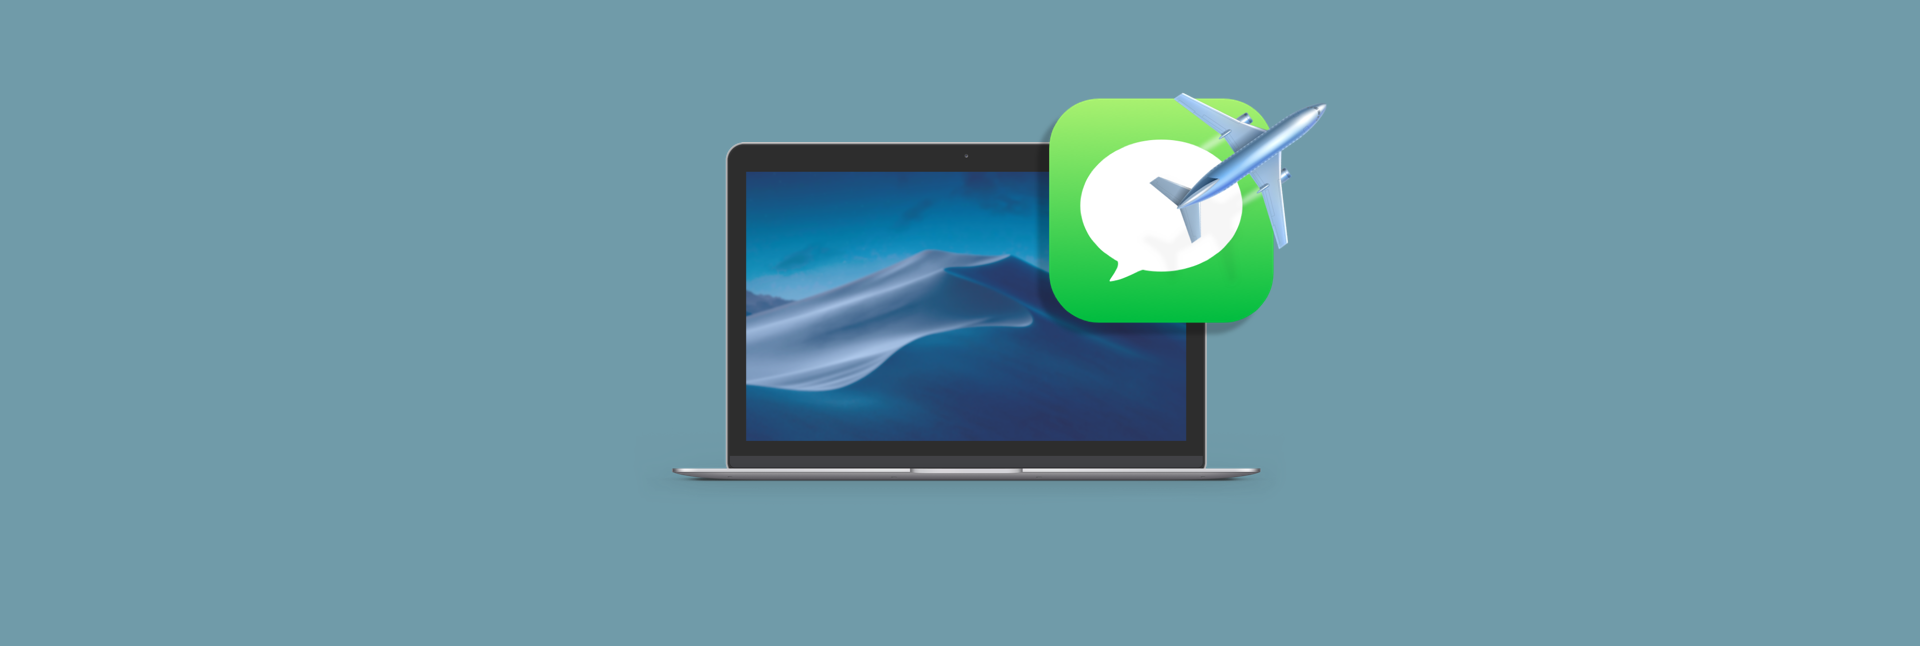 How To Track Flight Information With Mac Or iPhone – Setapp